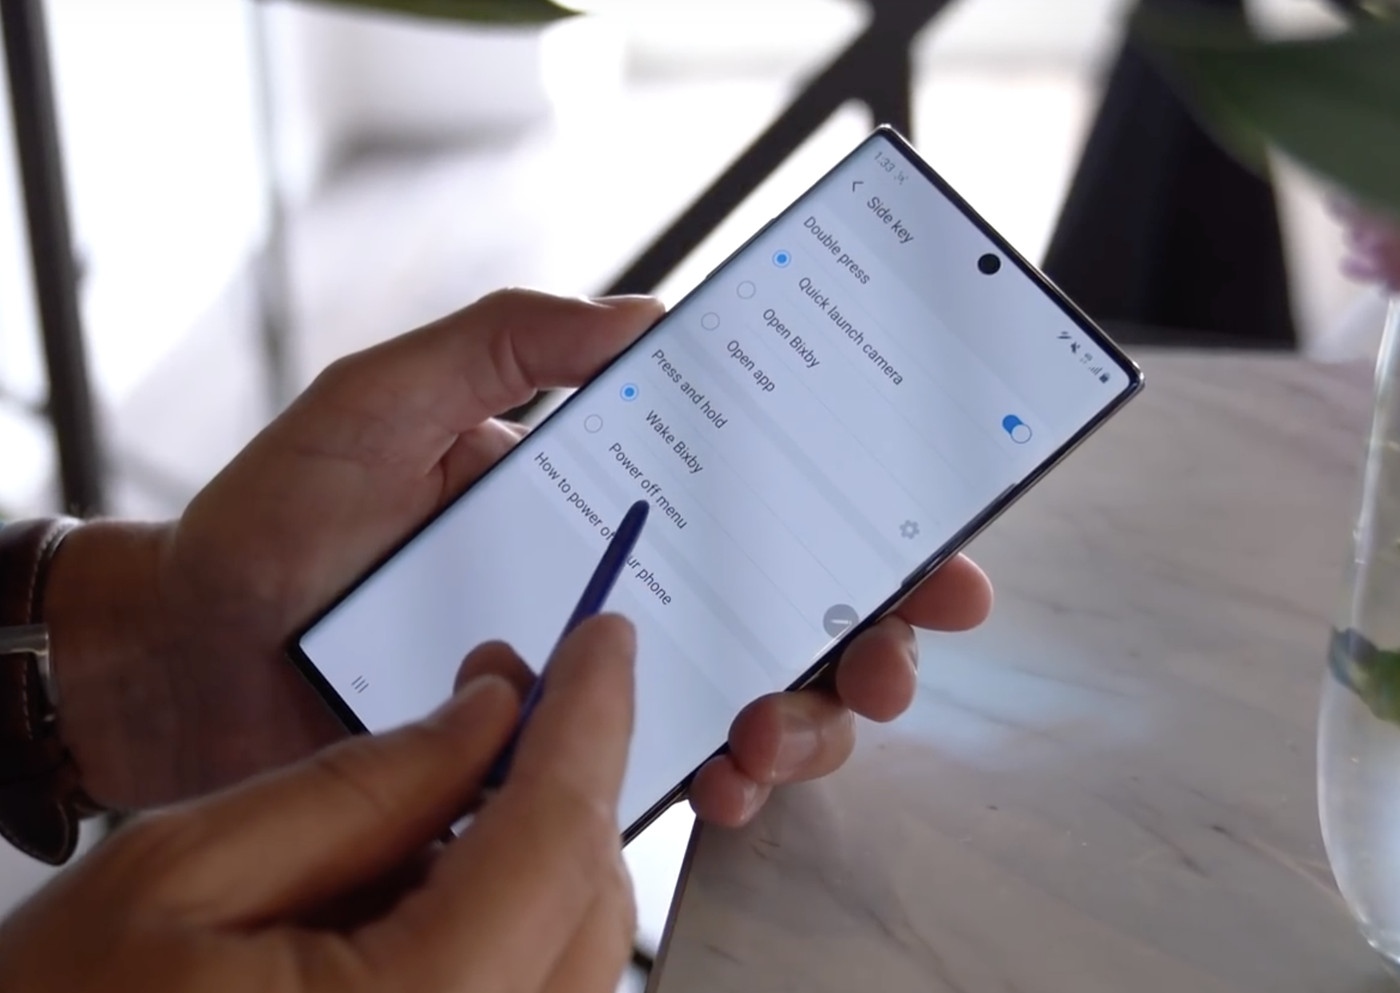 Samsung didn't mention Bixby once during its entire Galaxy Note 10